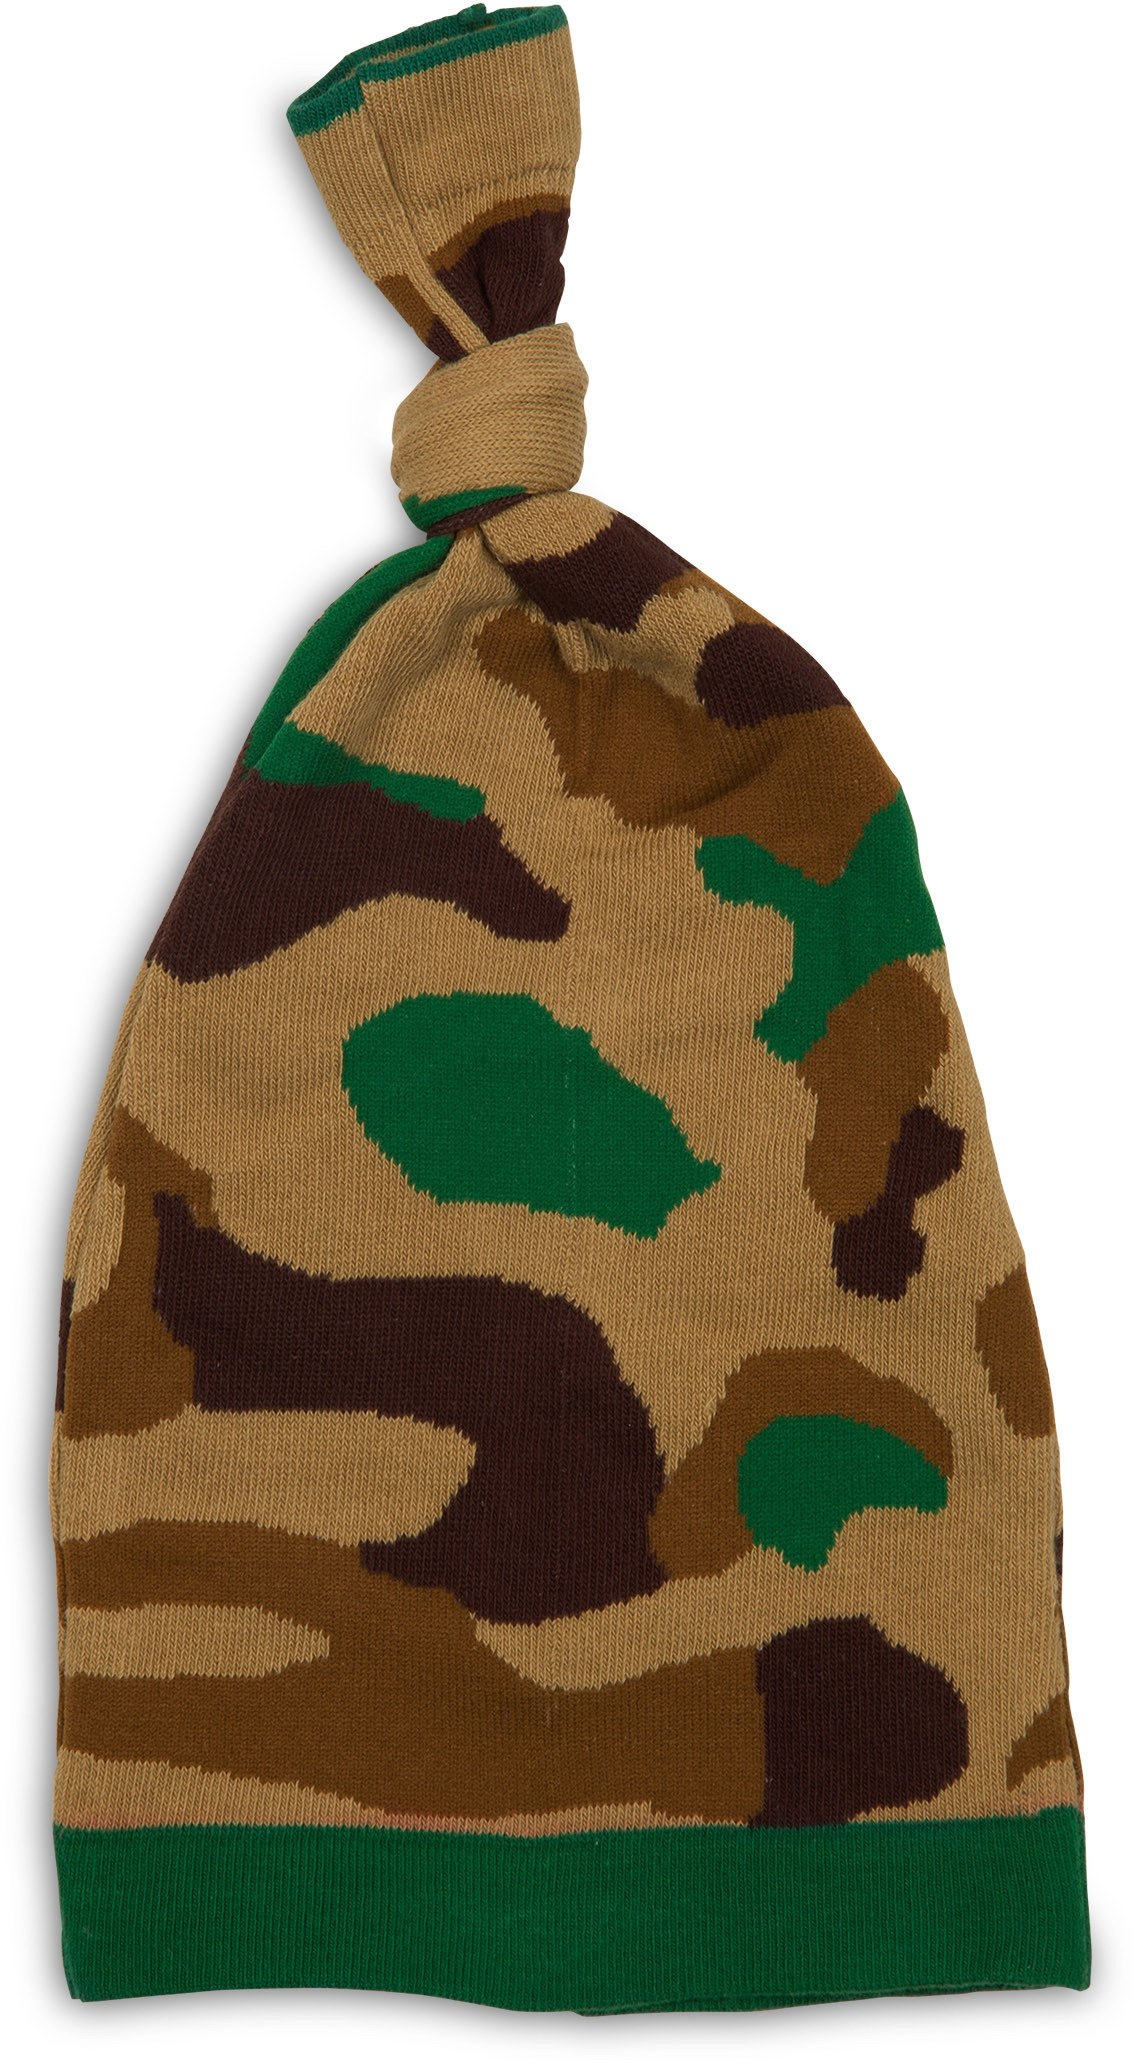 0efc713b23e Amazon.com  Izzy   Owie - 0-12 Month Camouflage Loose Baby Hat  Toys   Games